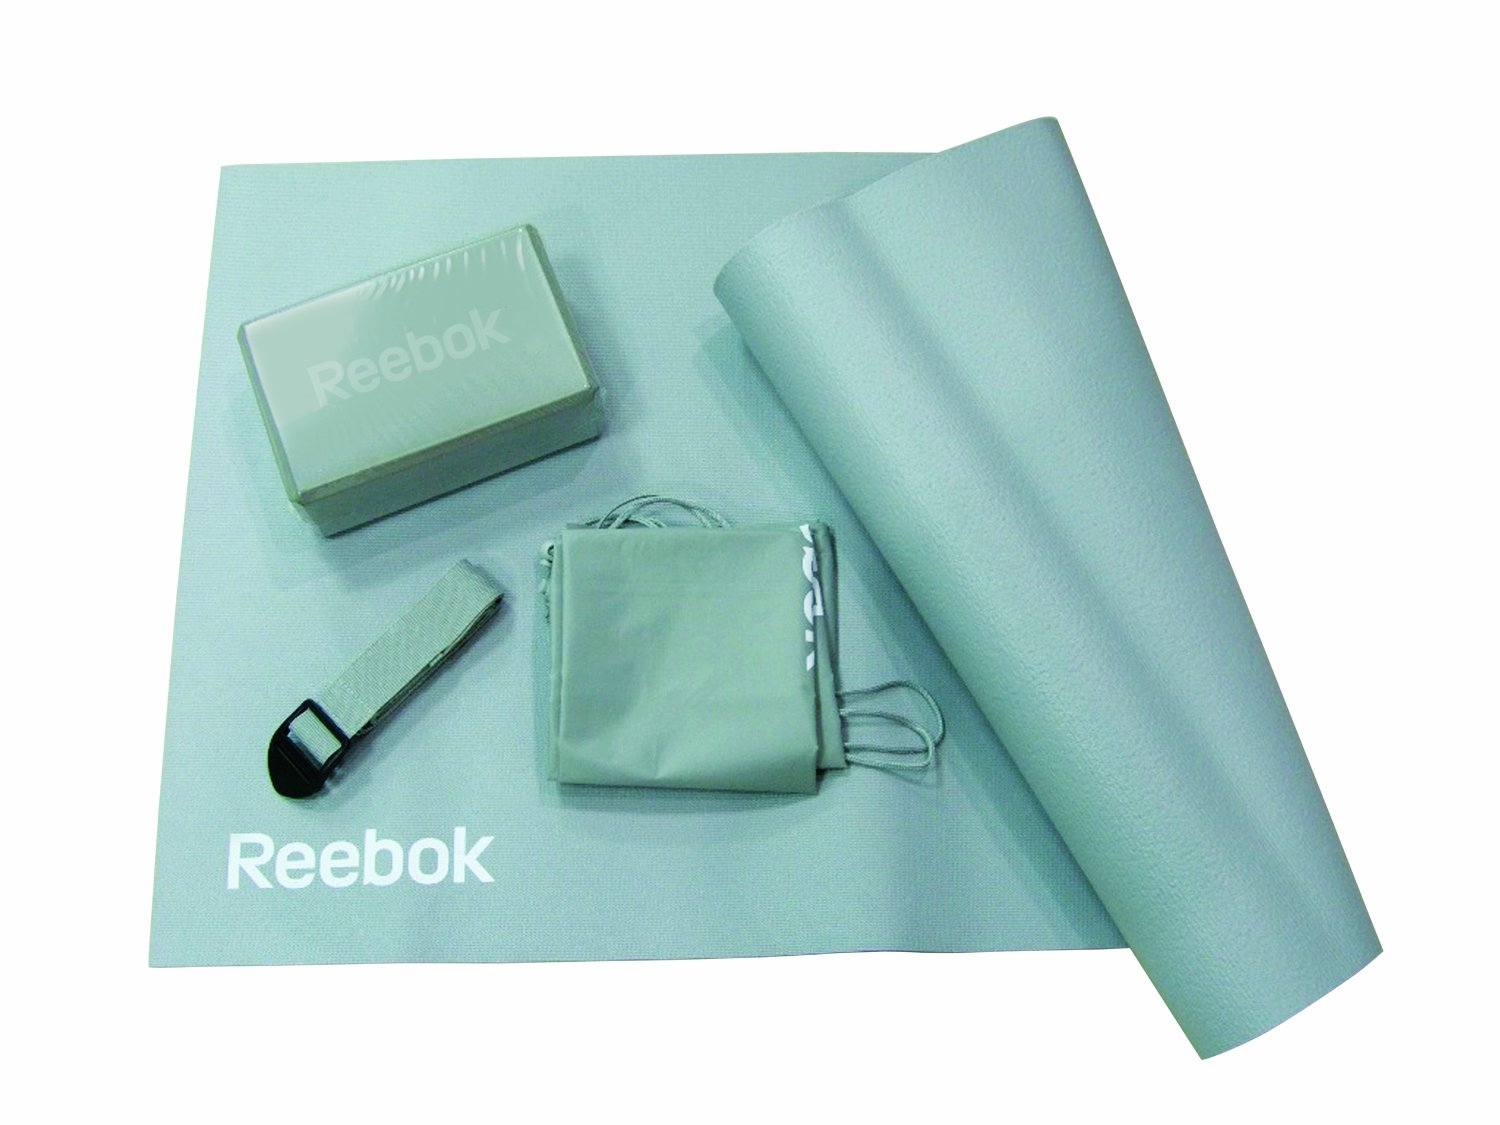 Reebok Uni Yoga Set Elements, Grau, RAEL-11025GR